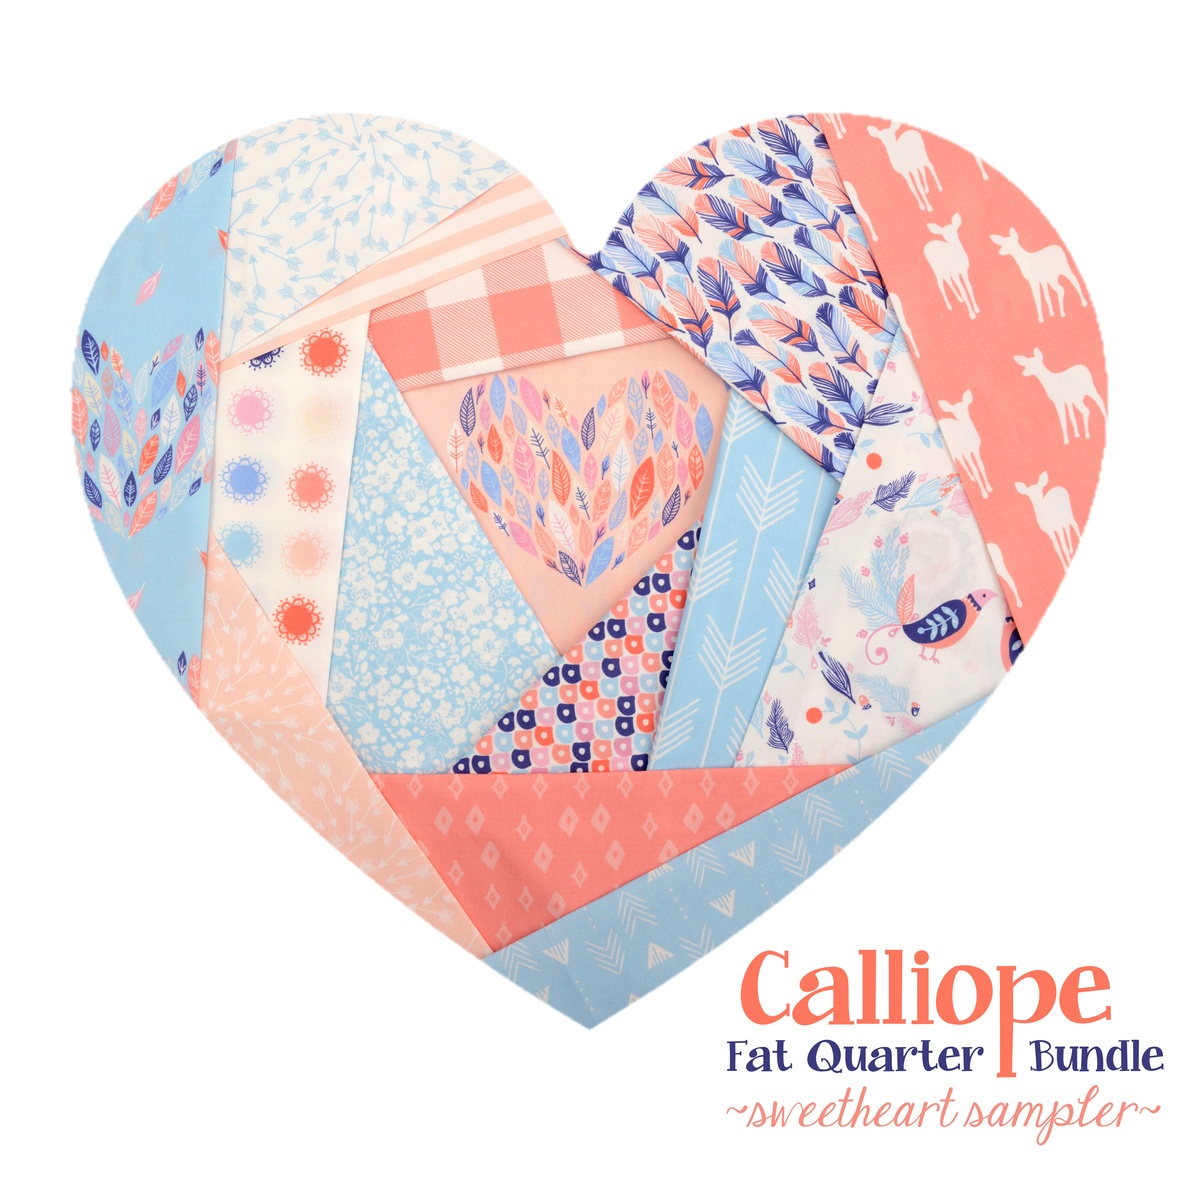 Calliope Fabric Sampler